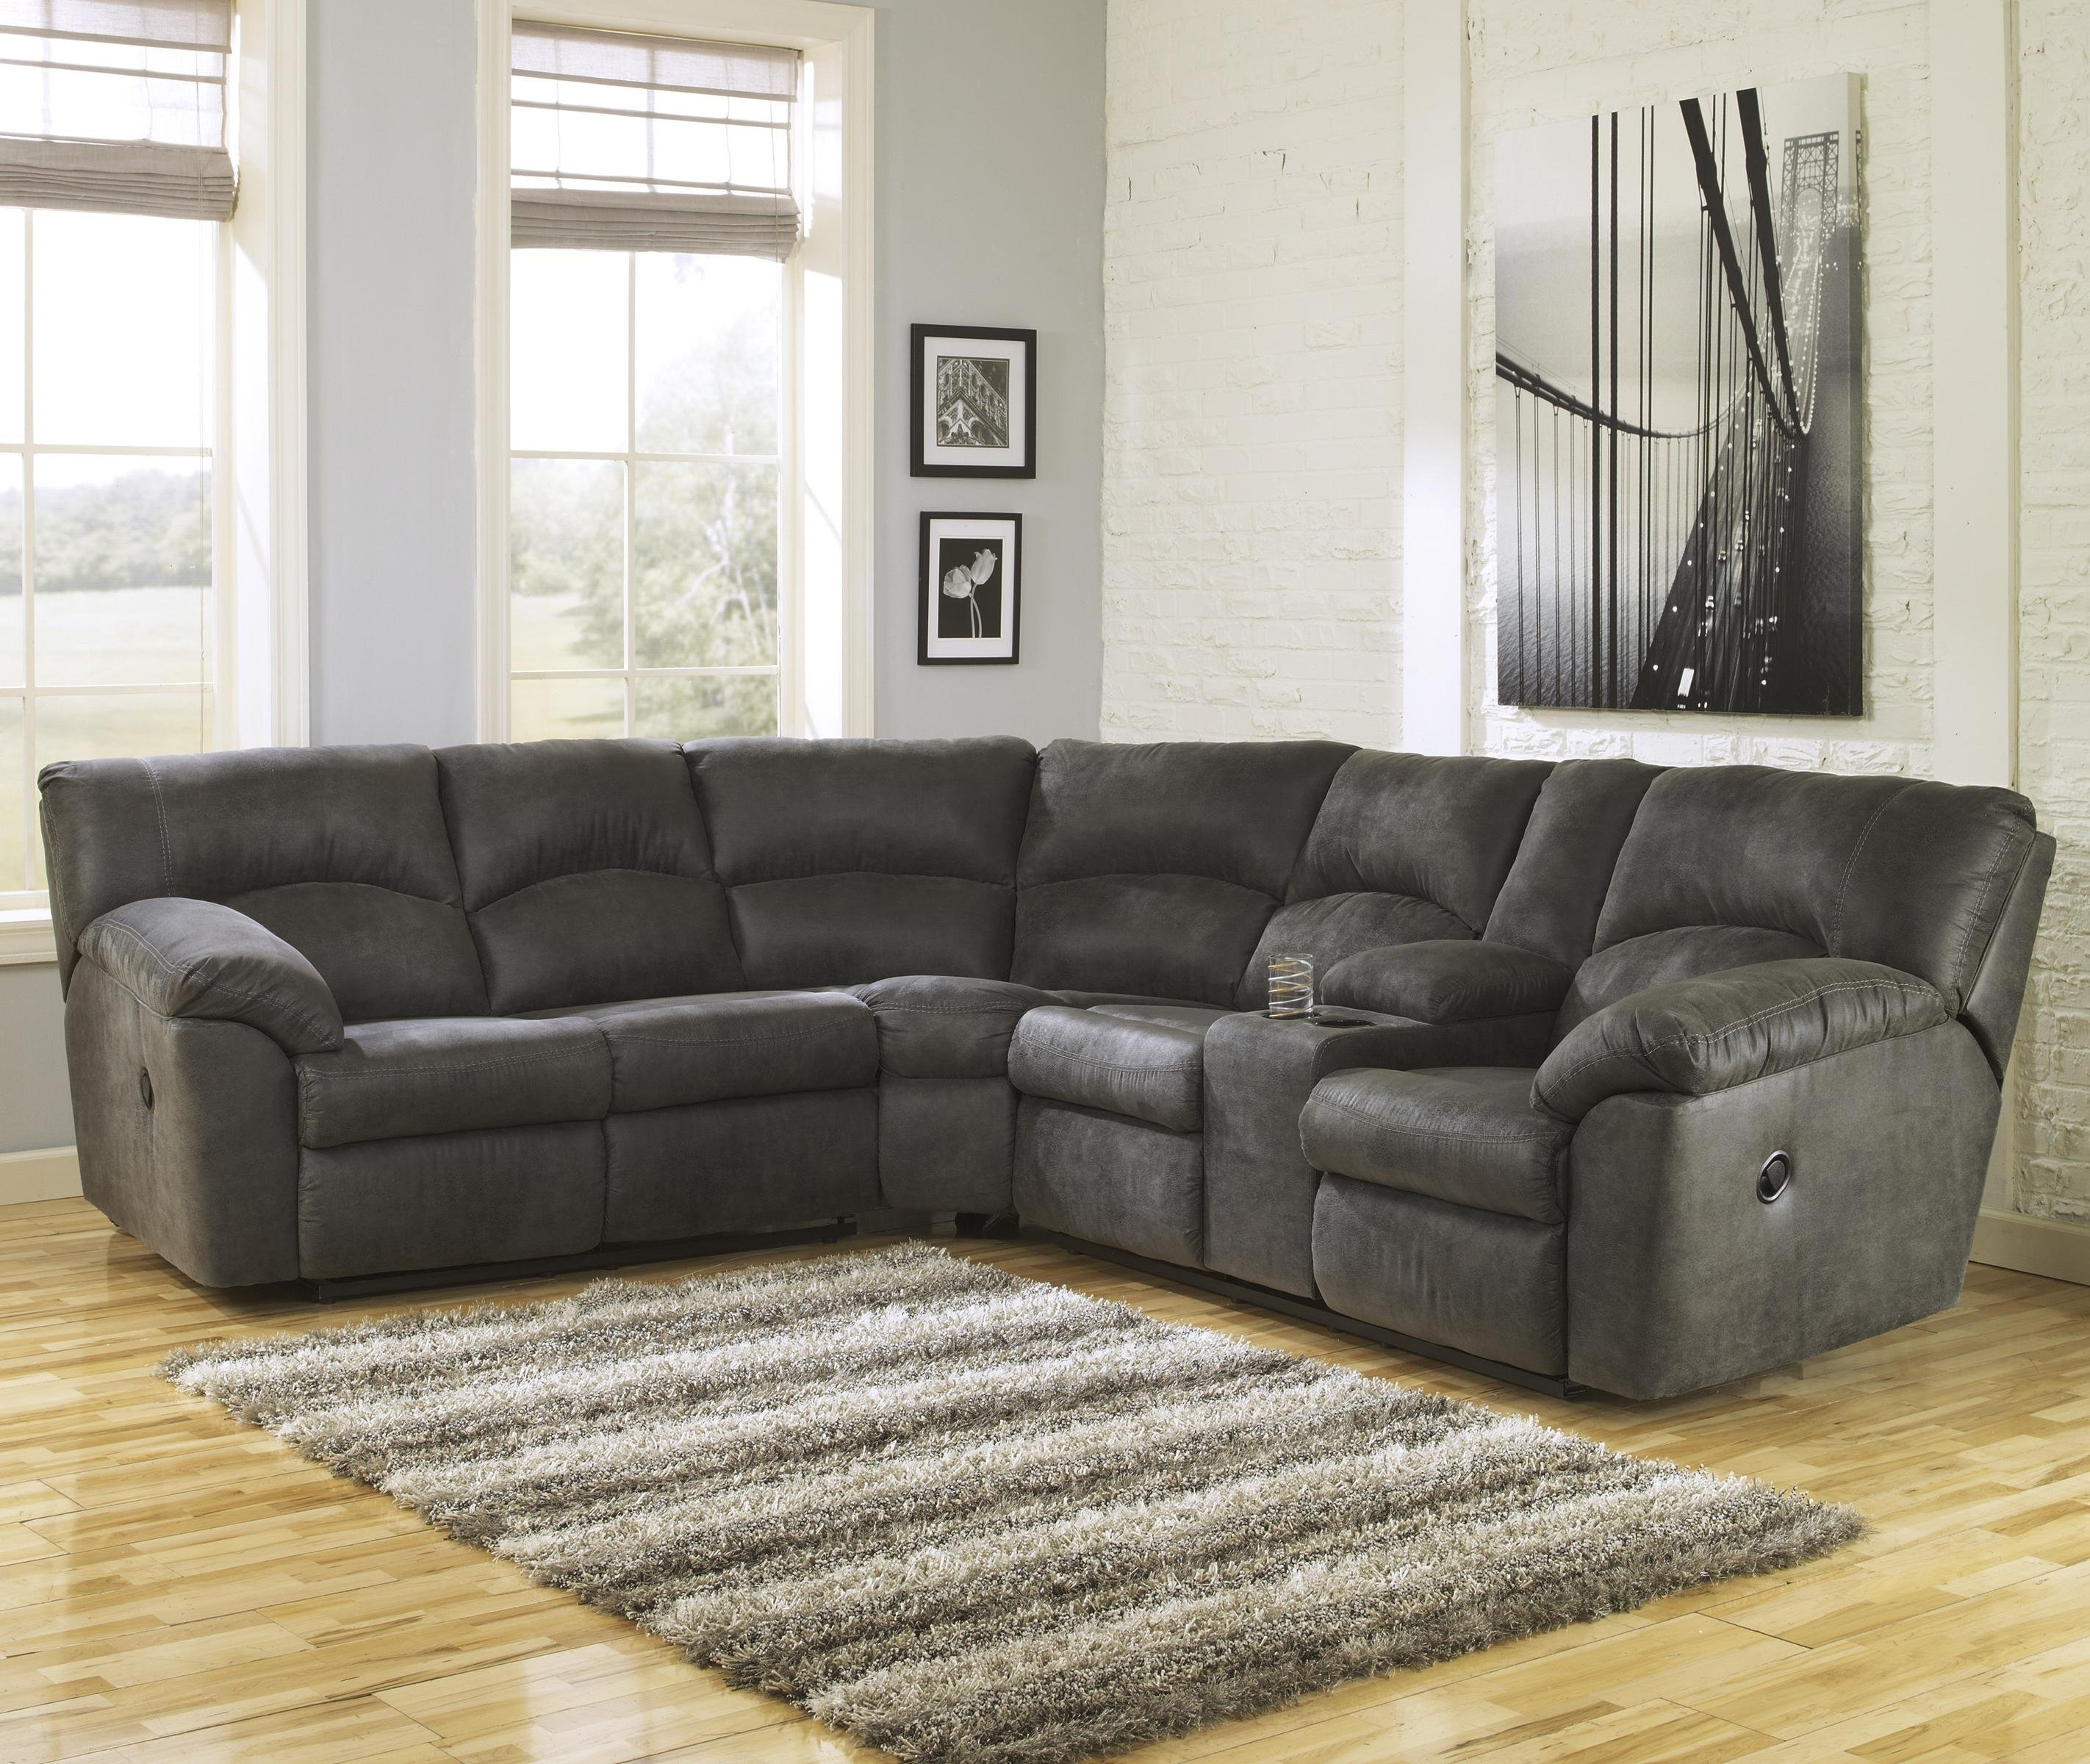 Simple 25 2 Piece Sectionals With Chaise Awesome | Russiandesignshow intended for Aquarius Light Grey 2 Piece Sectionals With Raf Chaise (Image 30 of 30)